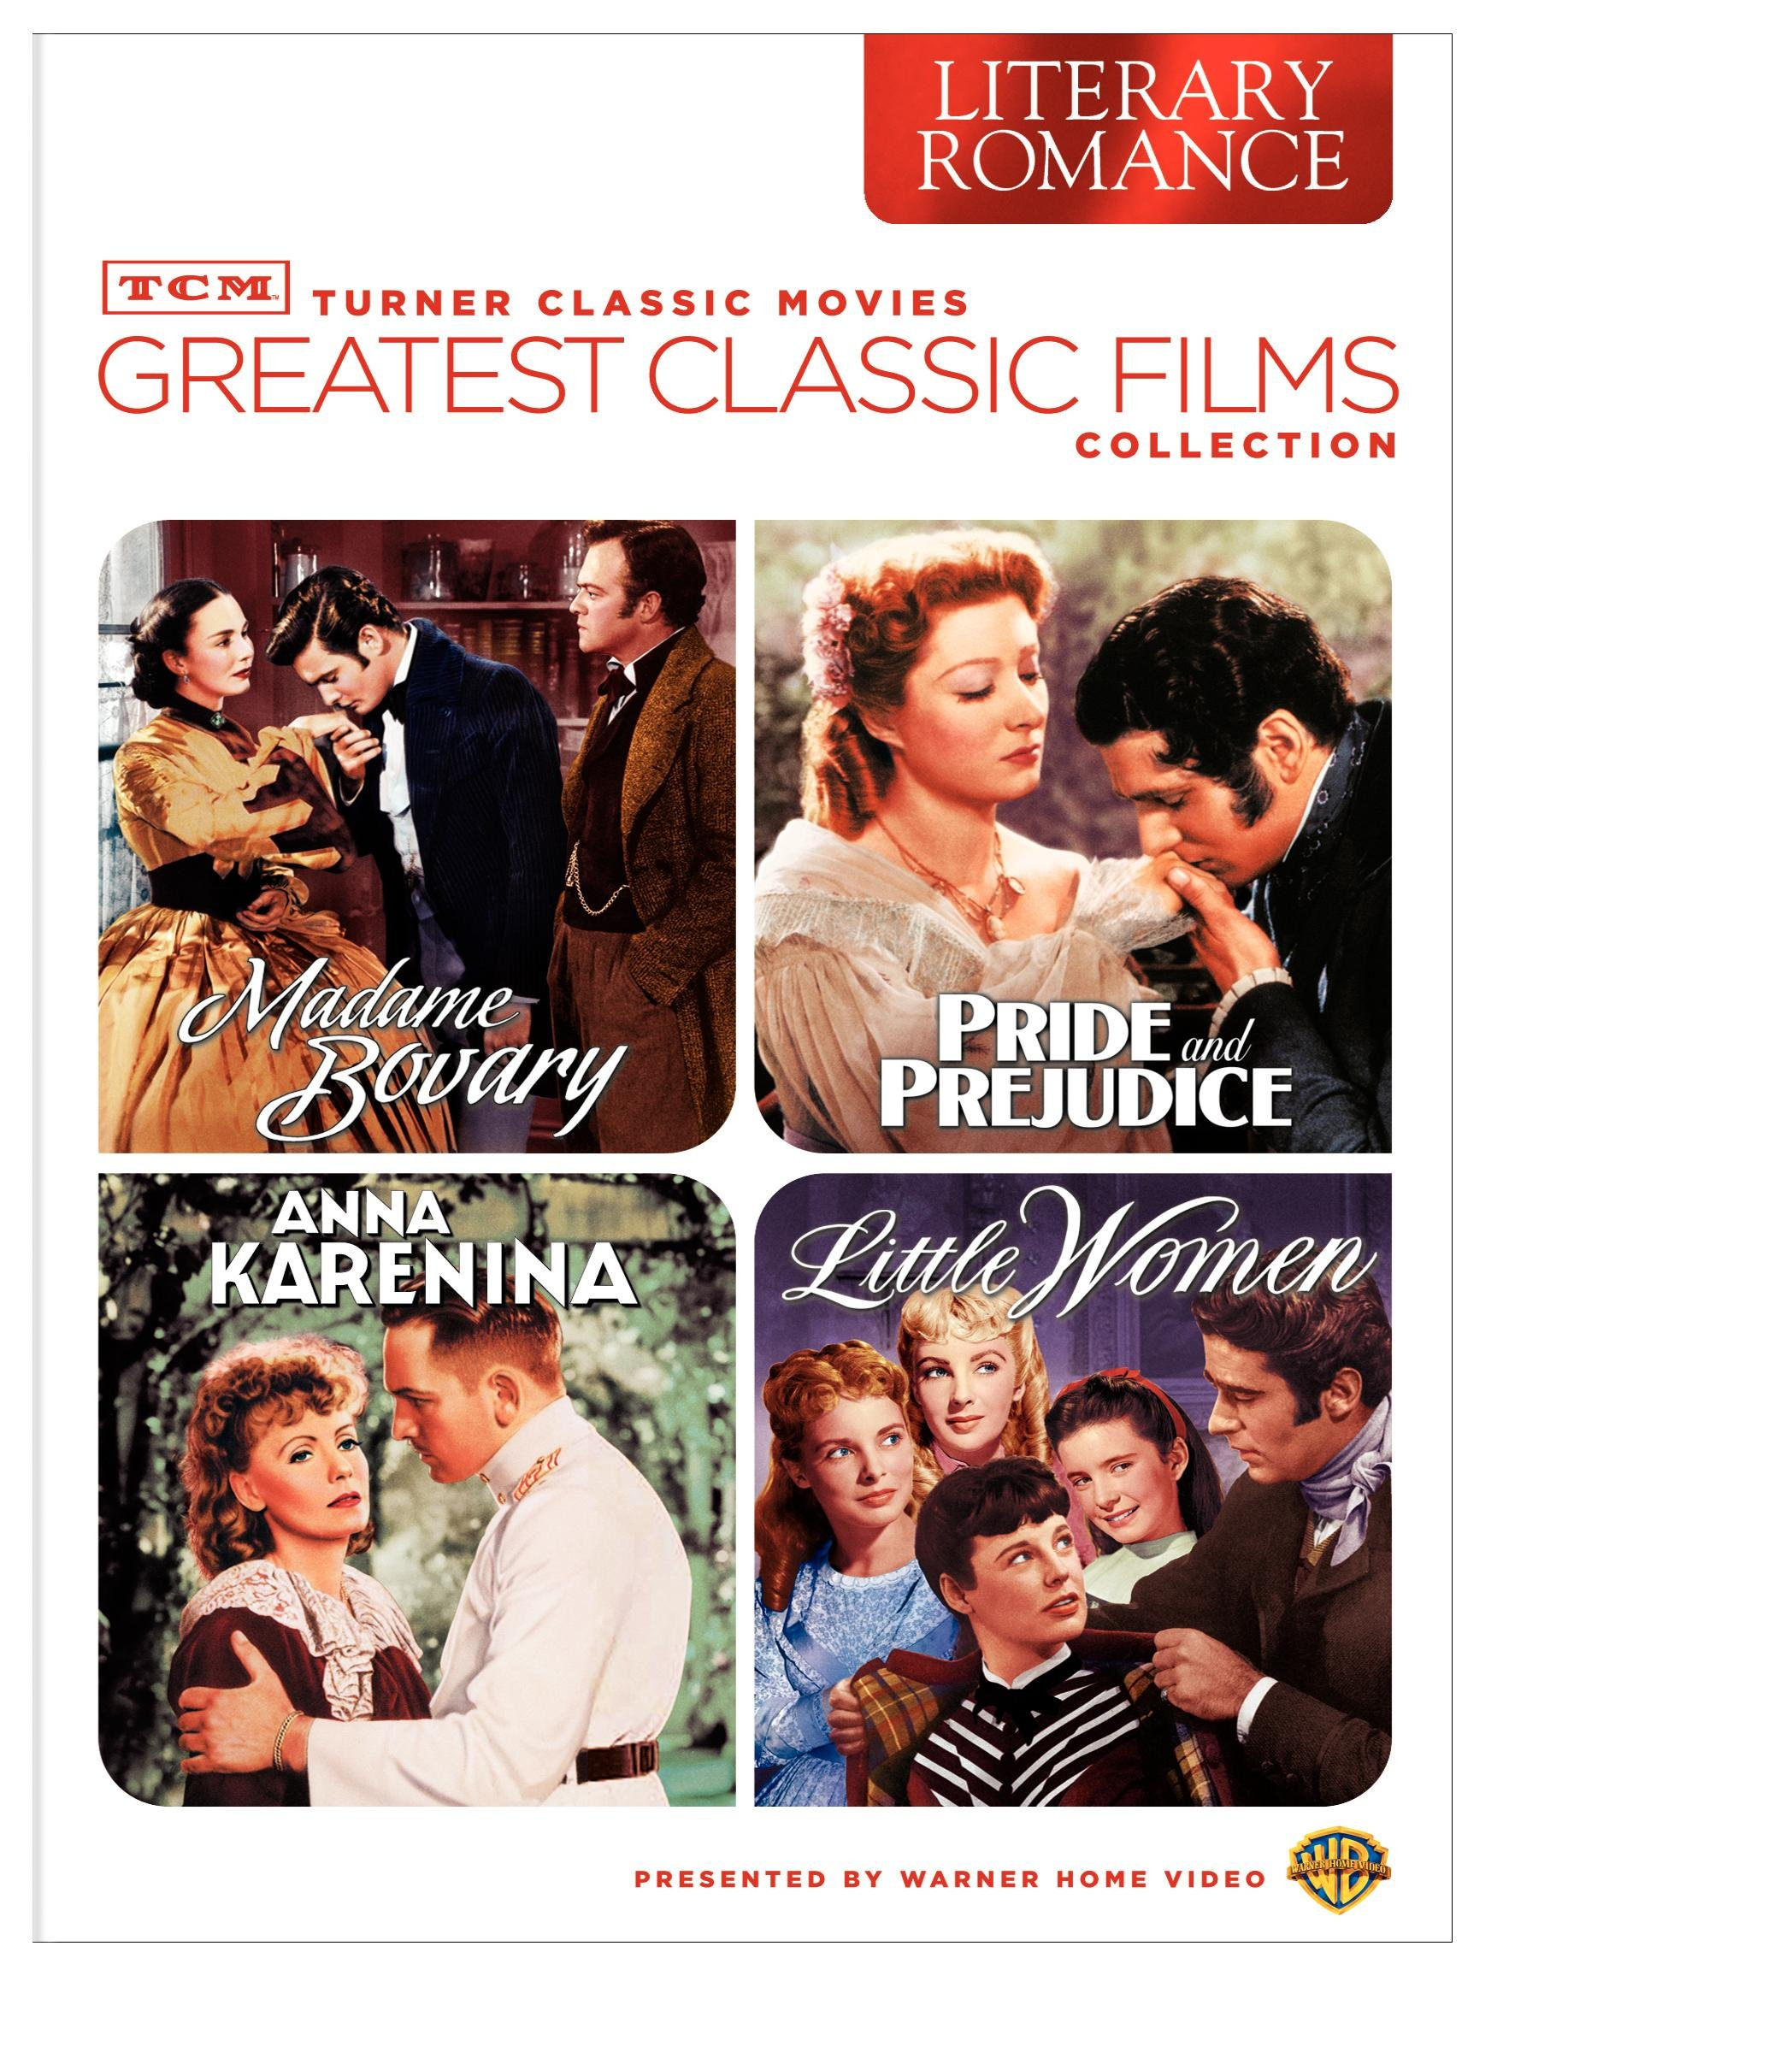 TCM Greatest Classic Films Collection: Literary Romance (Little Women / Pride and Prejudice / Madame Bovary / Anna Karenina) by WarnerBrothers